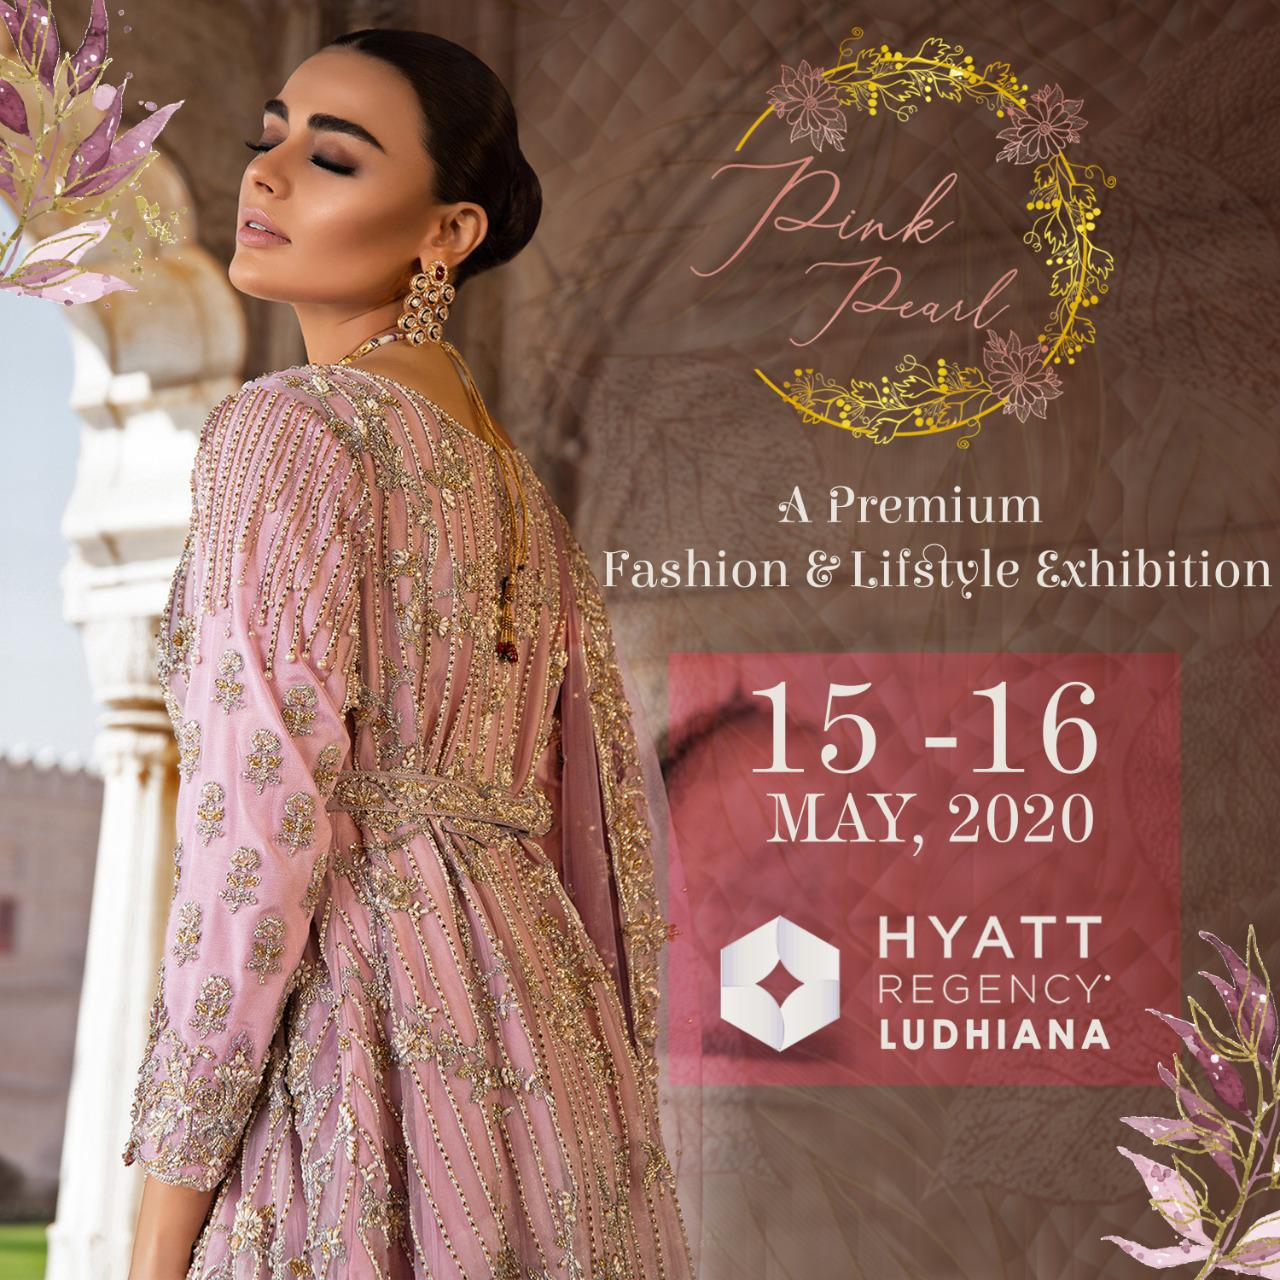 Pink Pearl Fashion & Lifestyle Exhibition